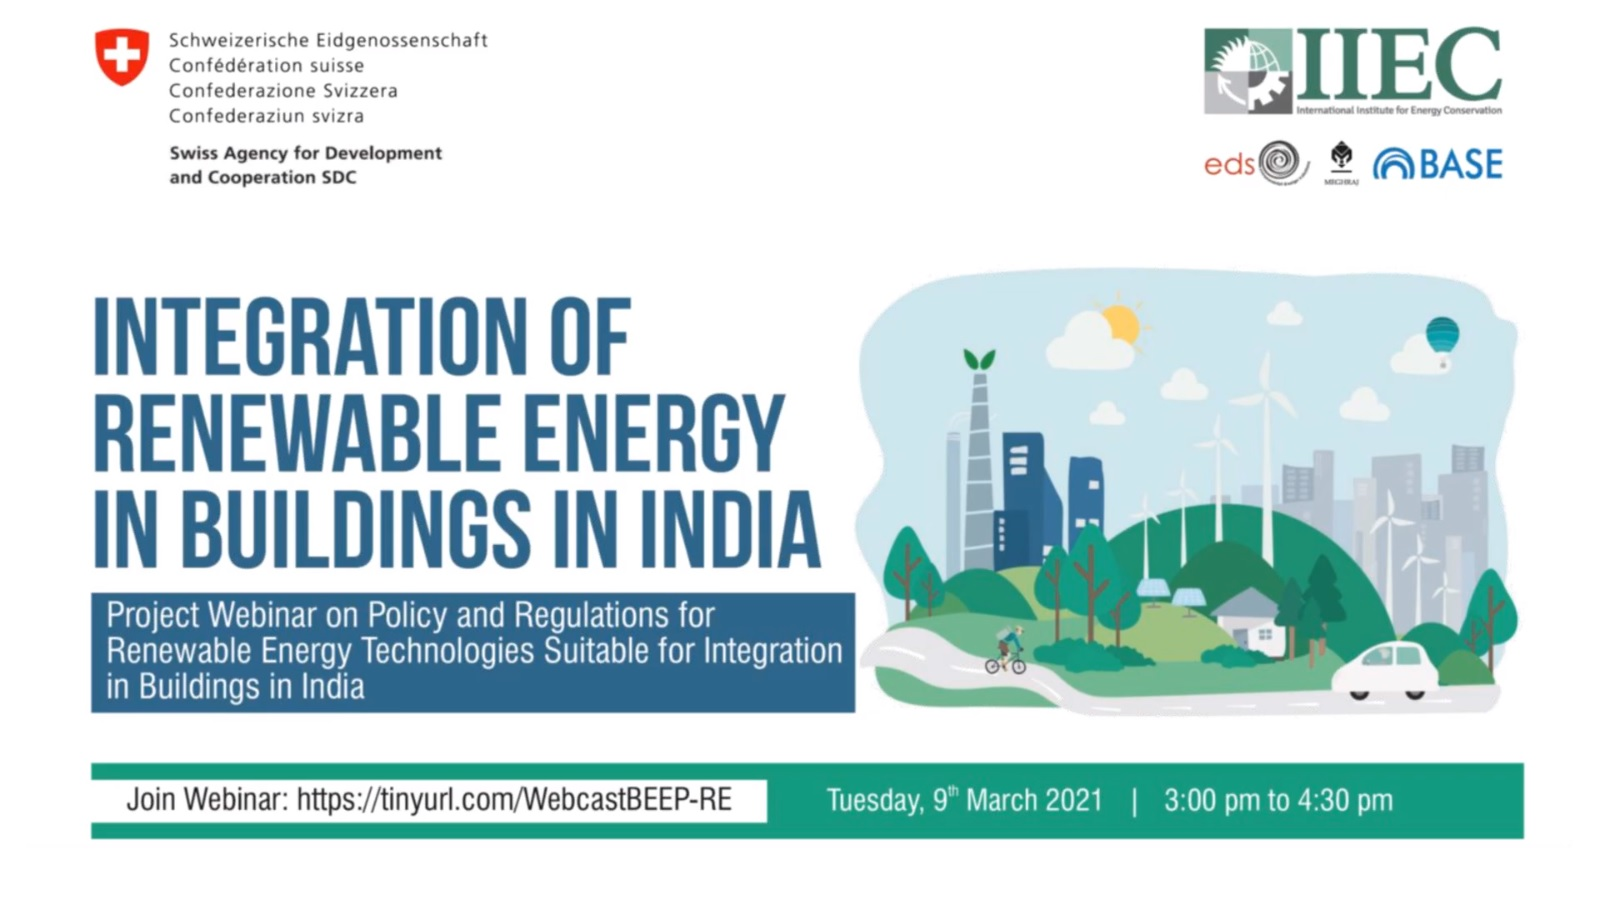 Webinar - Policy and Regulations for RE Technologies Suitable for Integration in Buildings in India